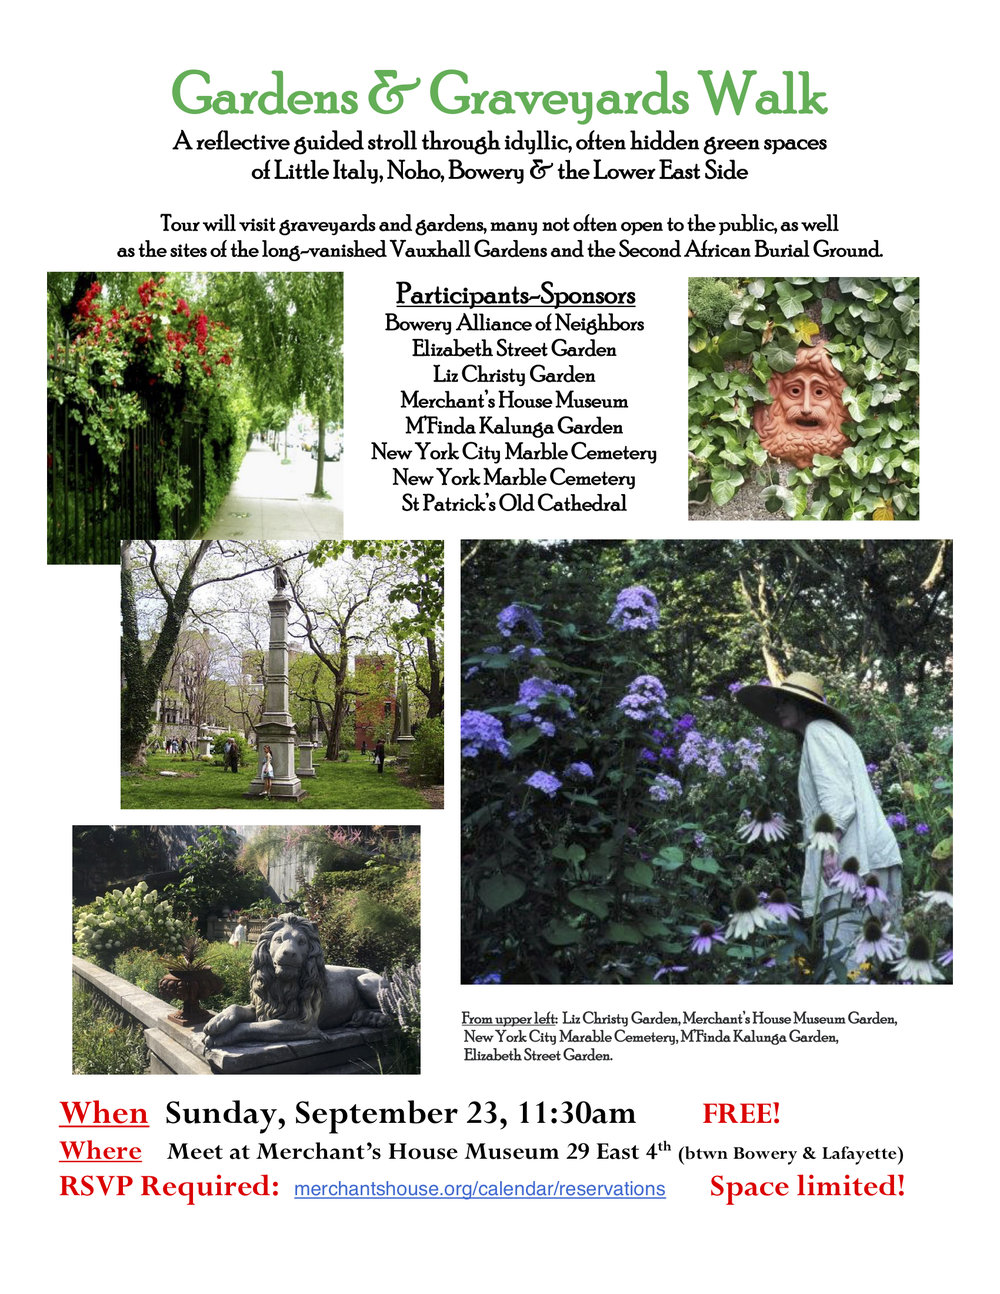 9-23-18 Gardens & Graveyard Walk - pdf final draft.jpg